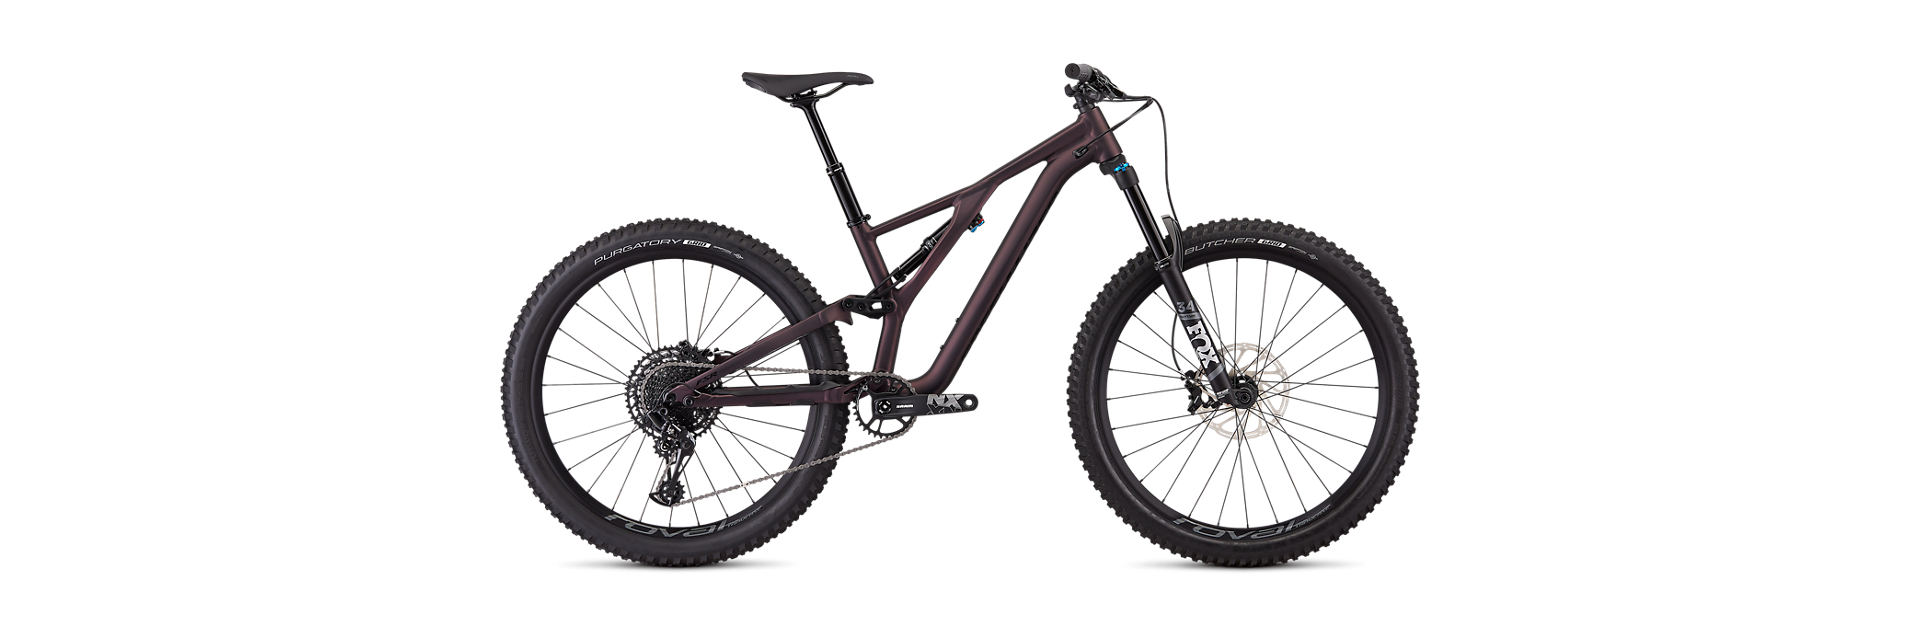 2019 Wms Stumpjumper Comp    Type:  Full Suspension   Mtn Bike  |   Frame Size:  Women's XS & Small |   Wheel Size:  27.5"